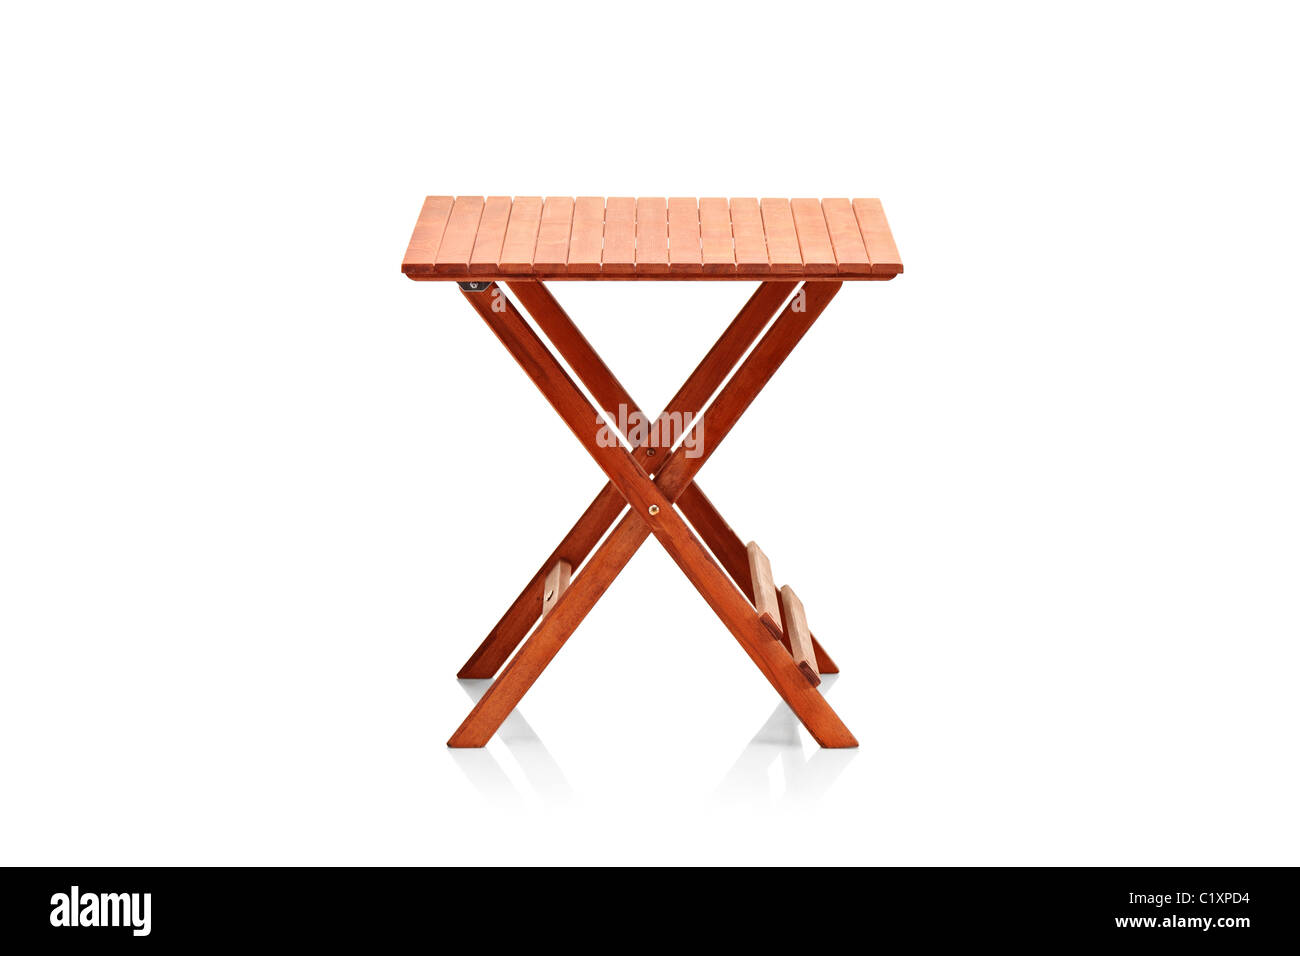 Wooden folding table - Stock Image